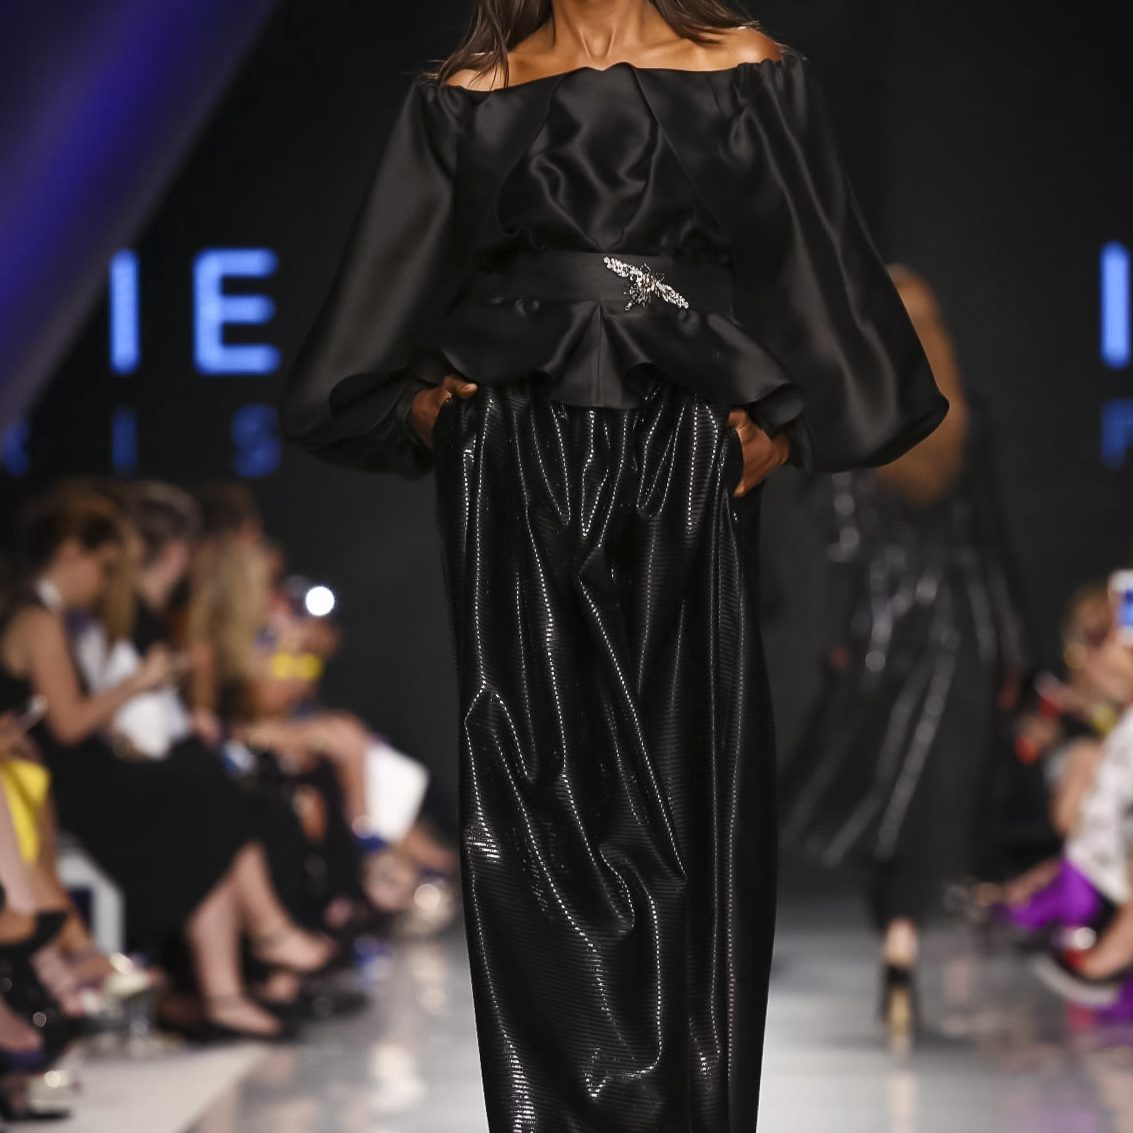 Ingie Paris Fashion Show, Ready to Wear Collection Fall Winter 2017 in Dubai